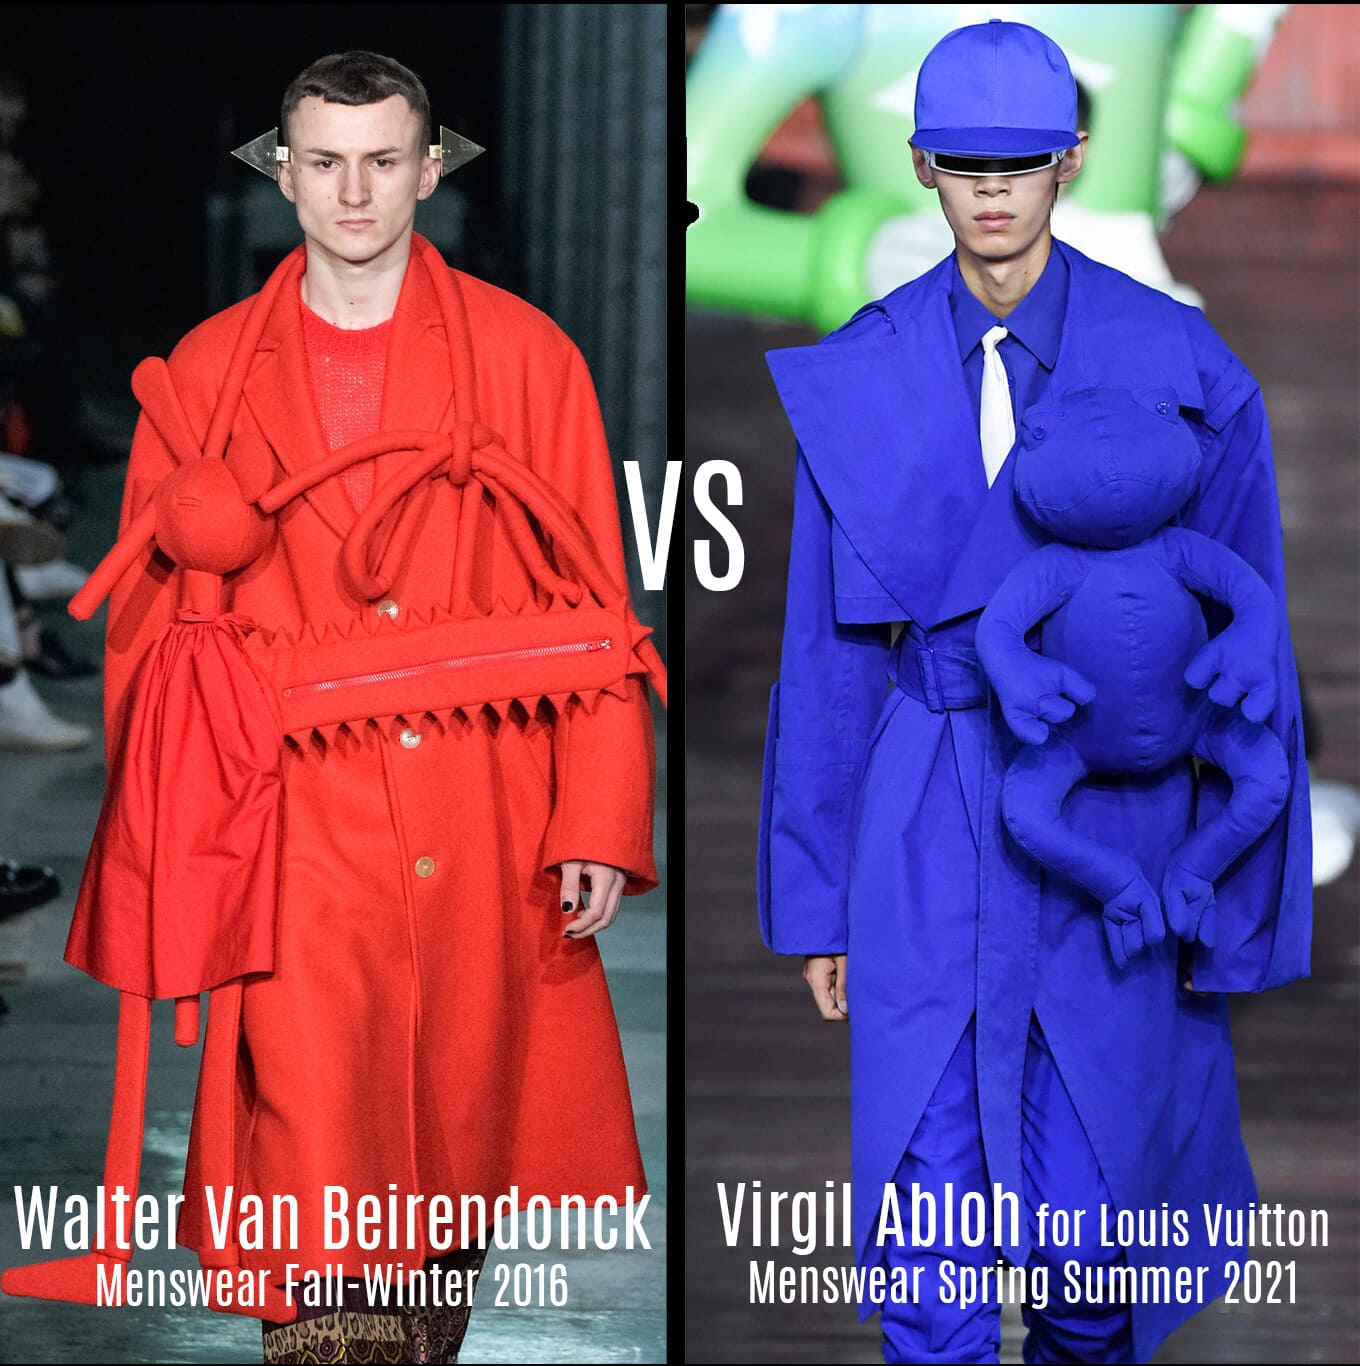 Walter Van Beirendonck Menswear Fall-Winter 2016 VS Virgil Abloh for Louis Vuitton Menswear Spring Summer 2021